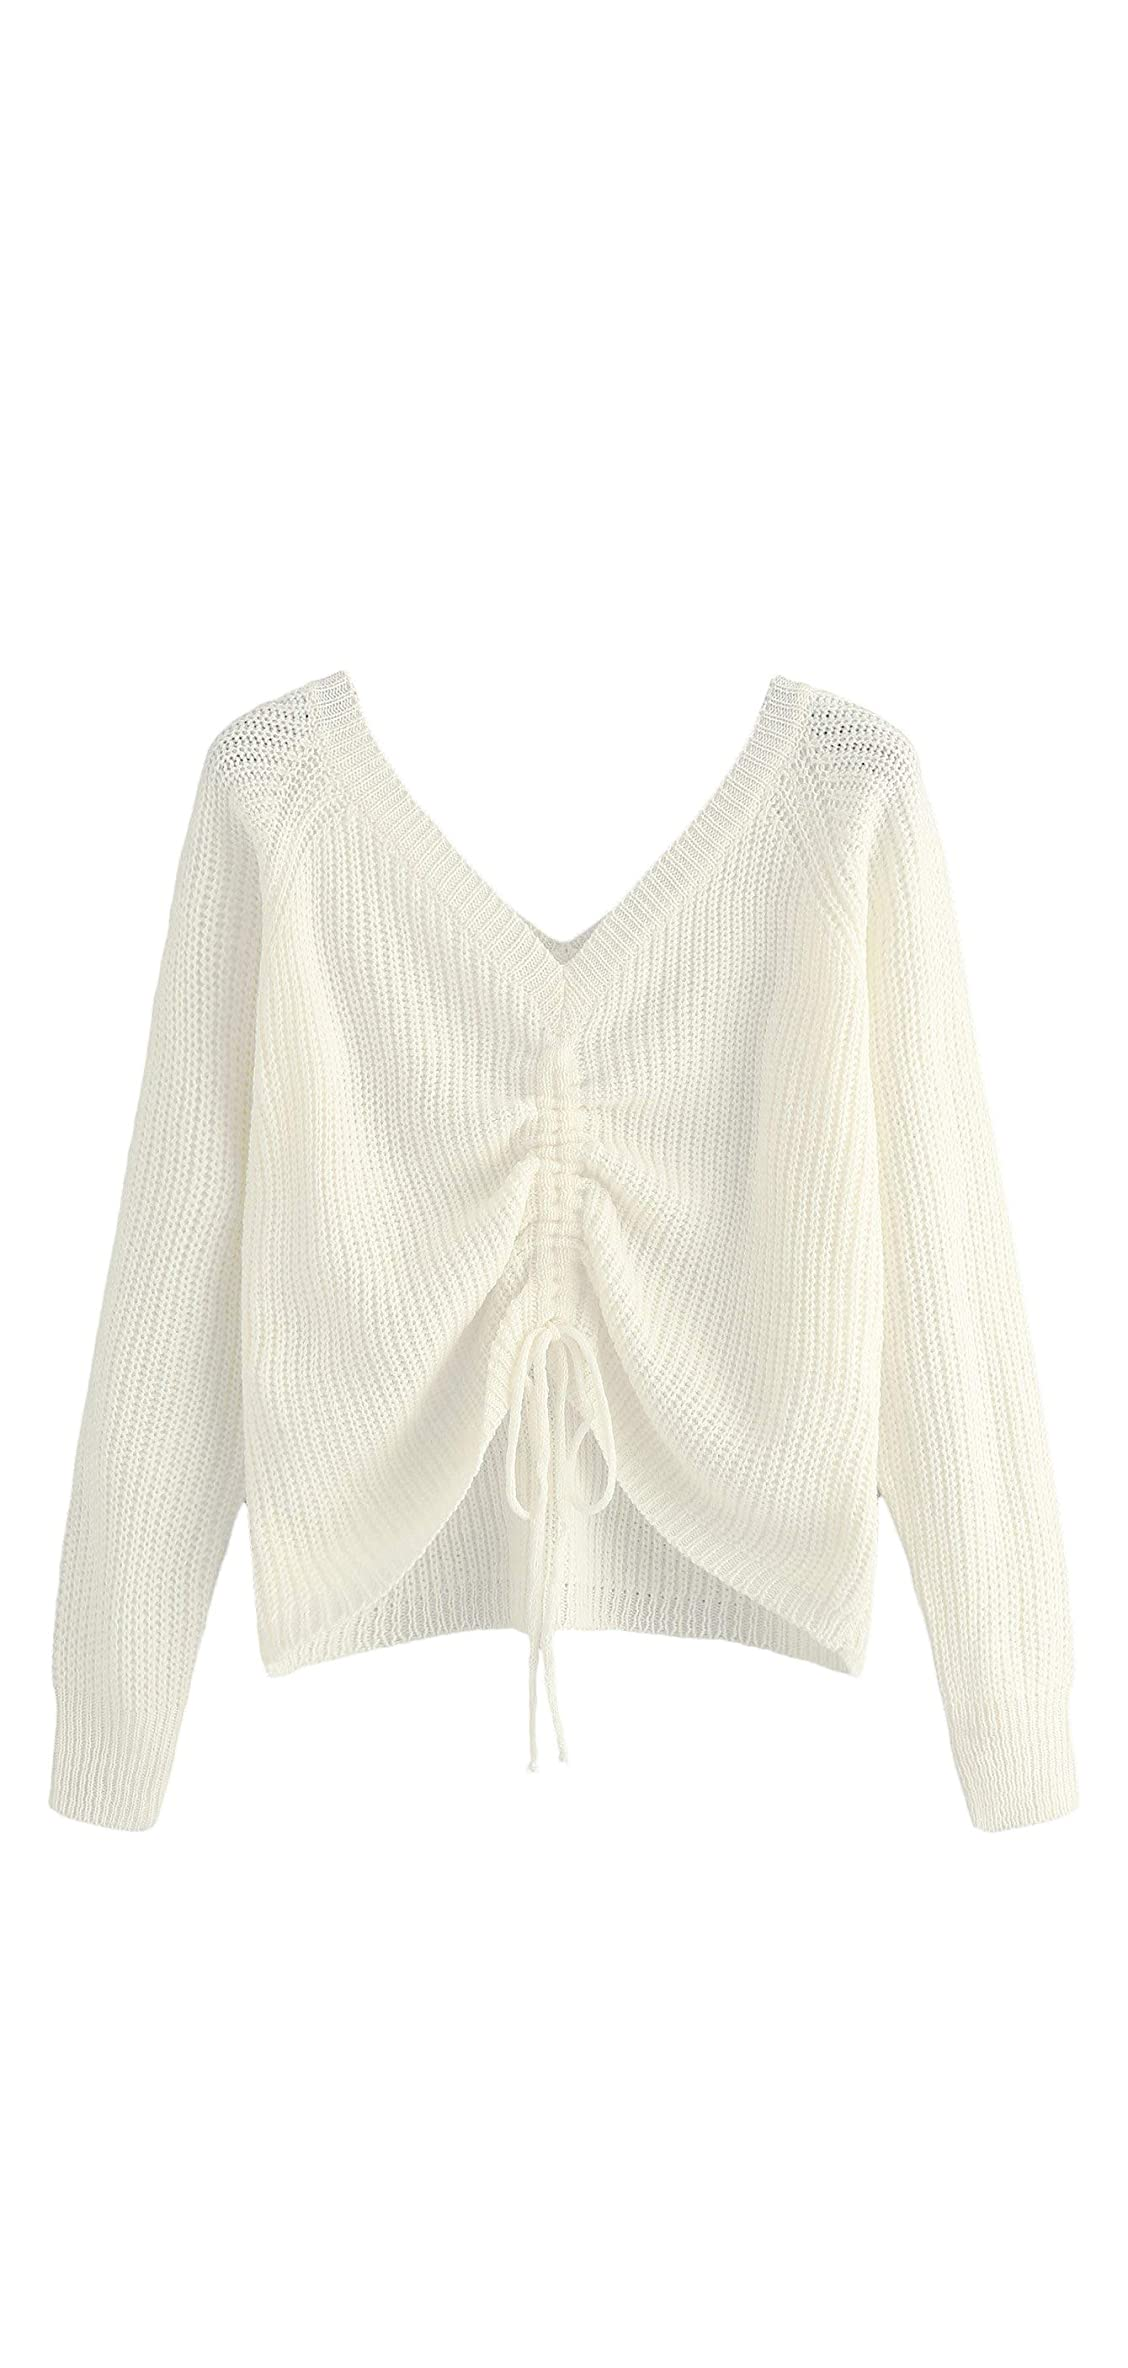 Women's Drawstring Knot Casual V Neck Pullover Crop